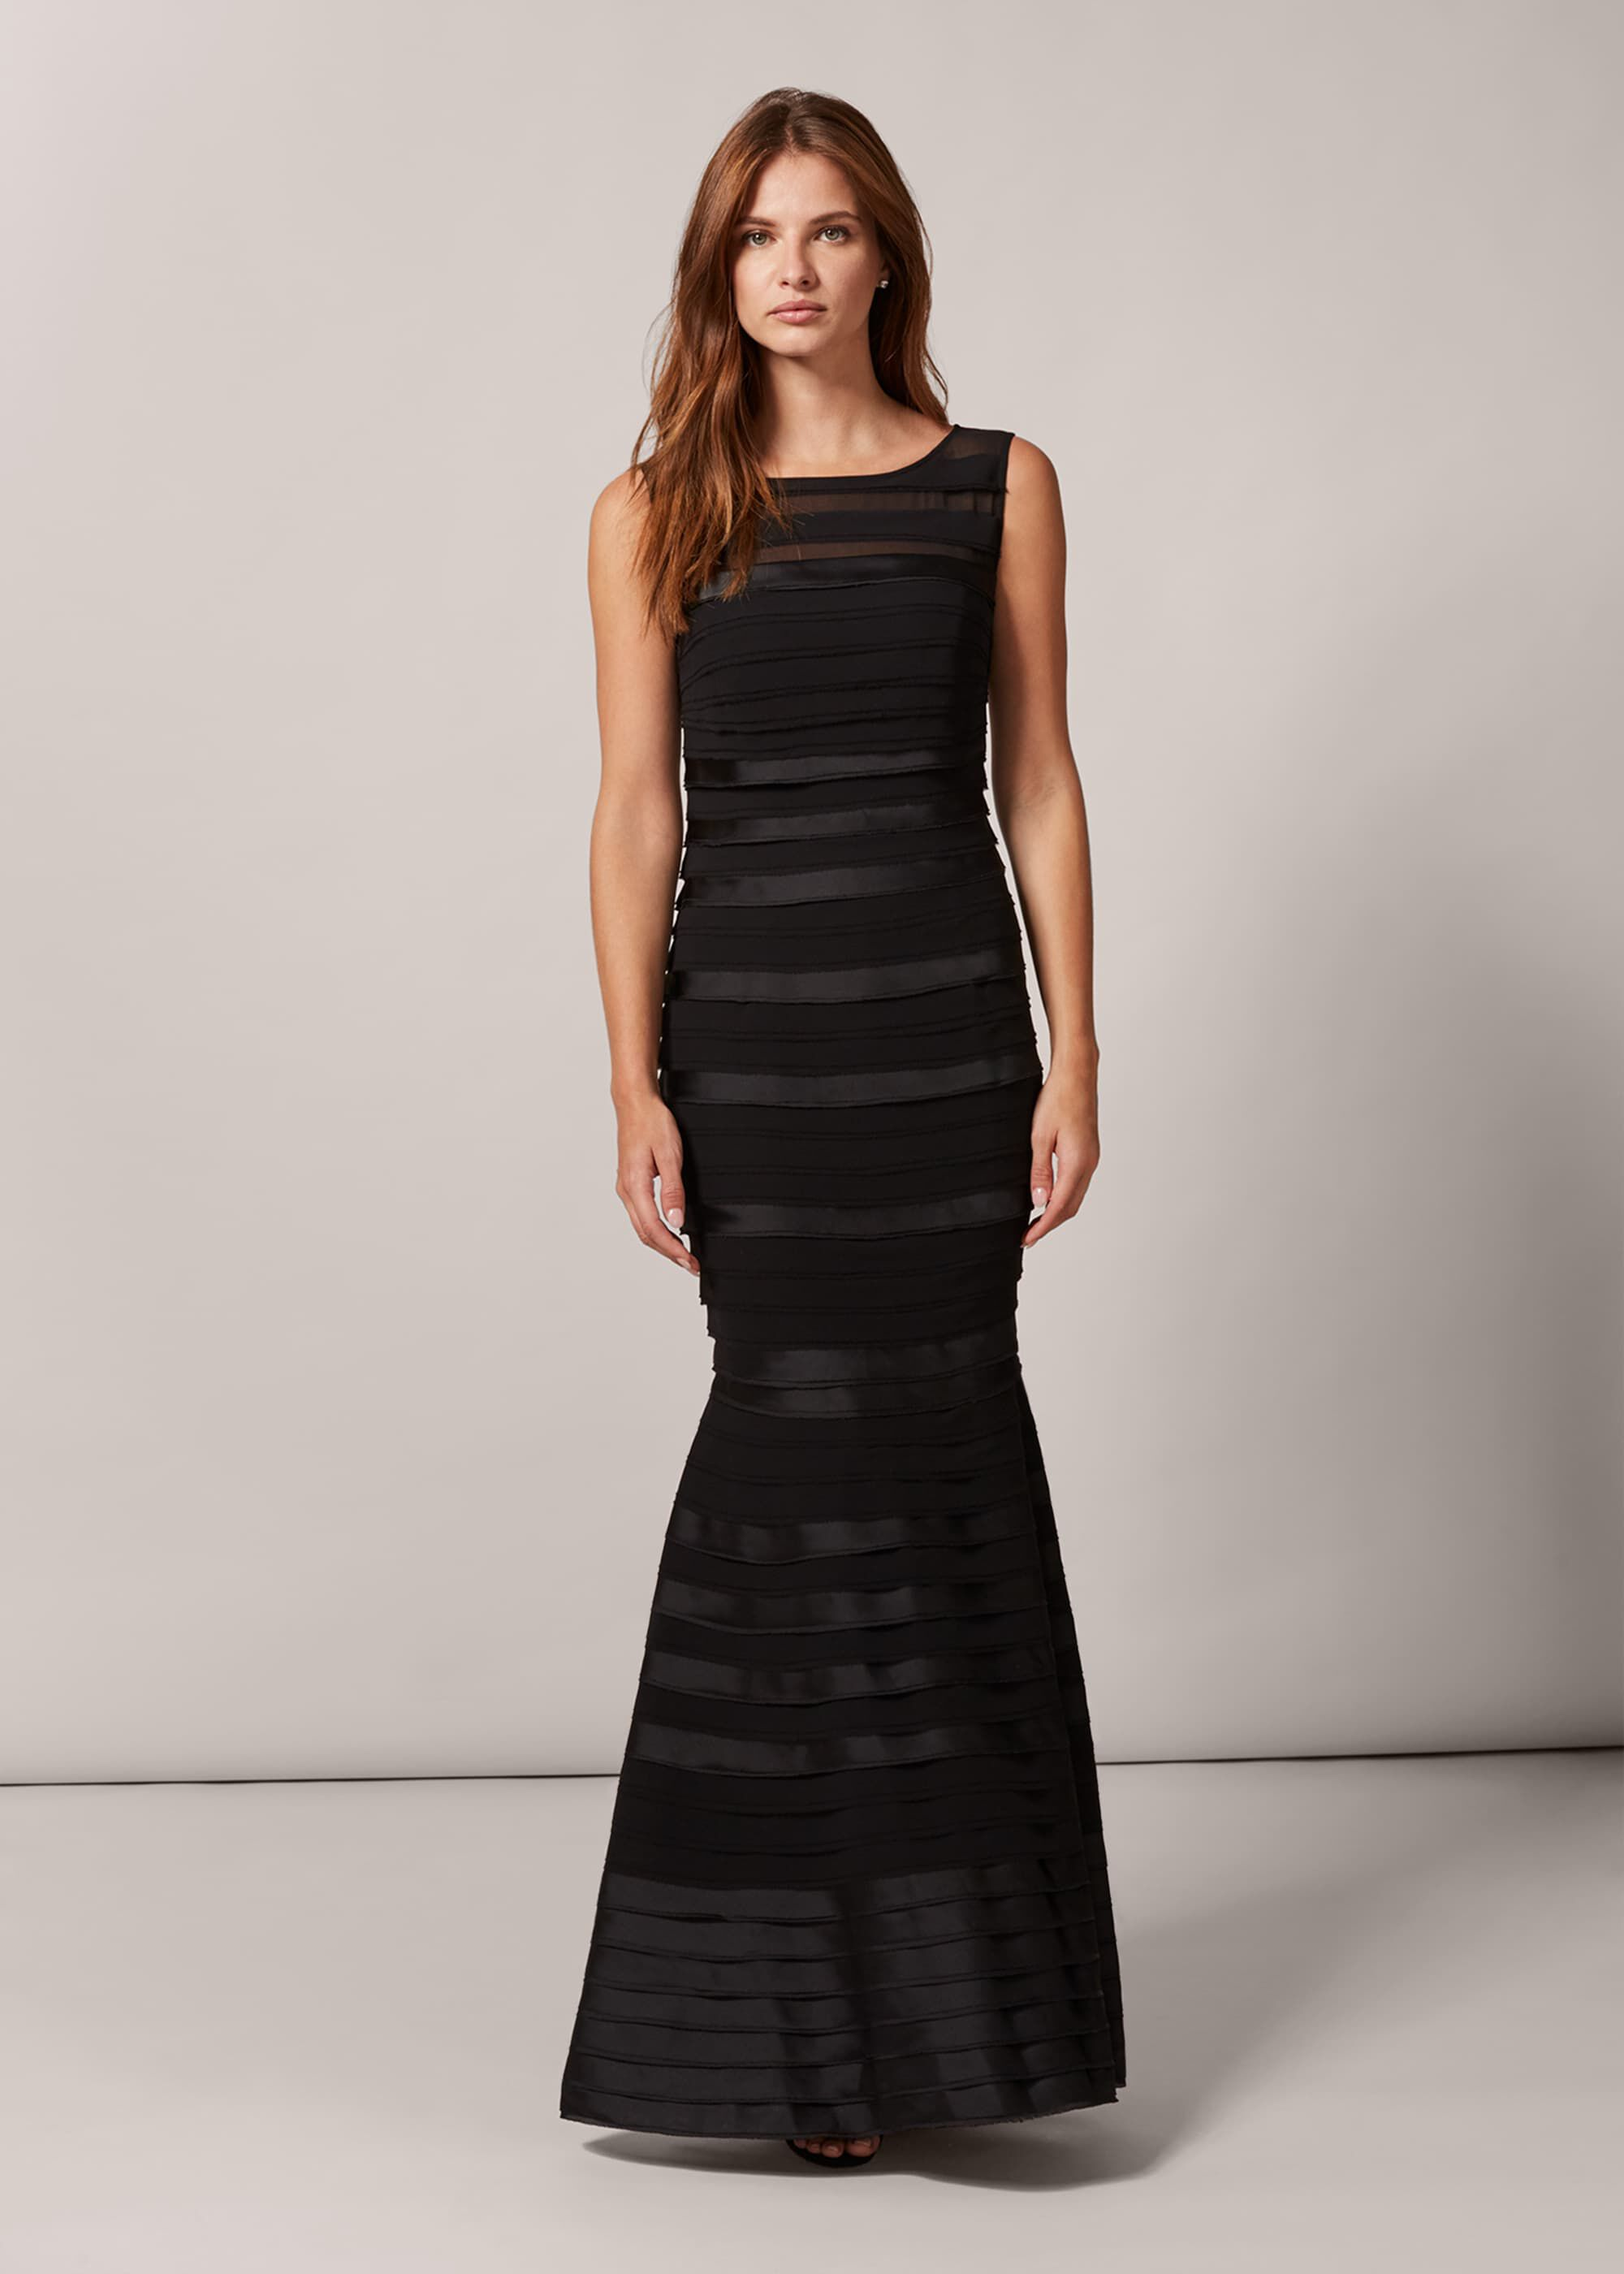 Phase Eight Shannon Layered Maxi Dress, Black, Maxi, Occasion Dress